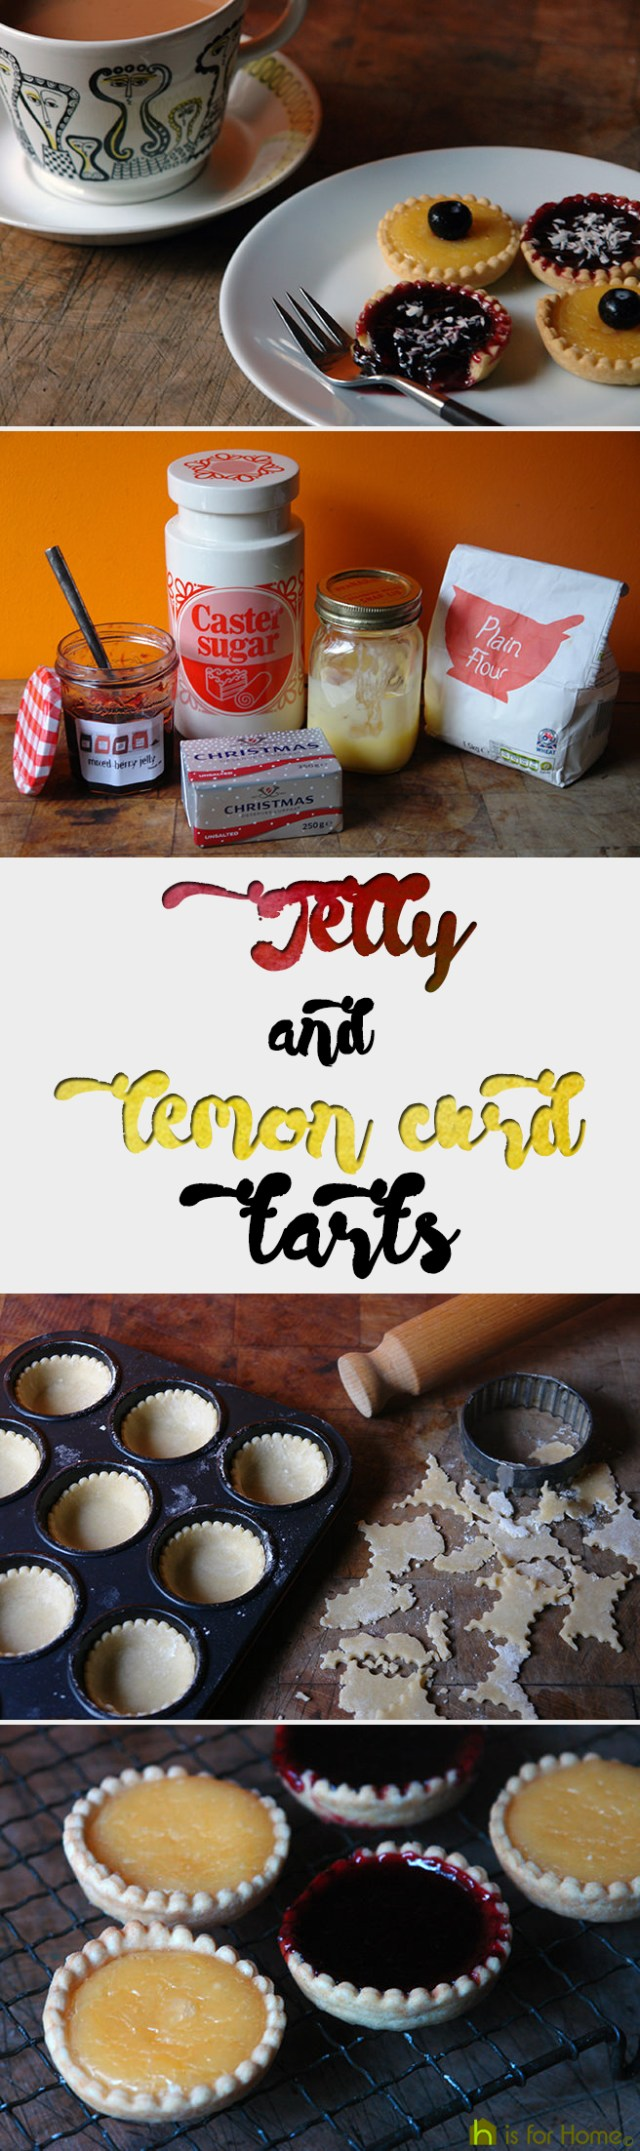 Home-made jelly and lemon curd tarts | H is for Home